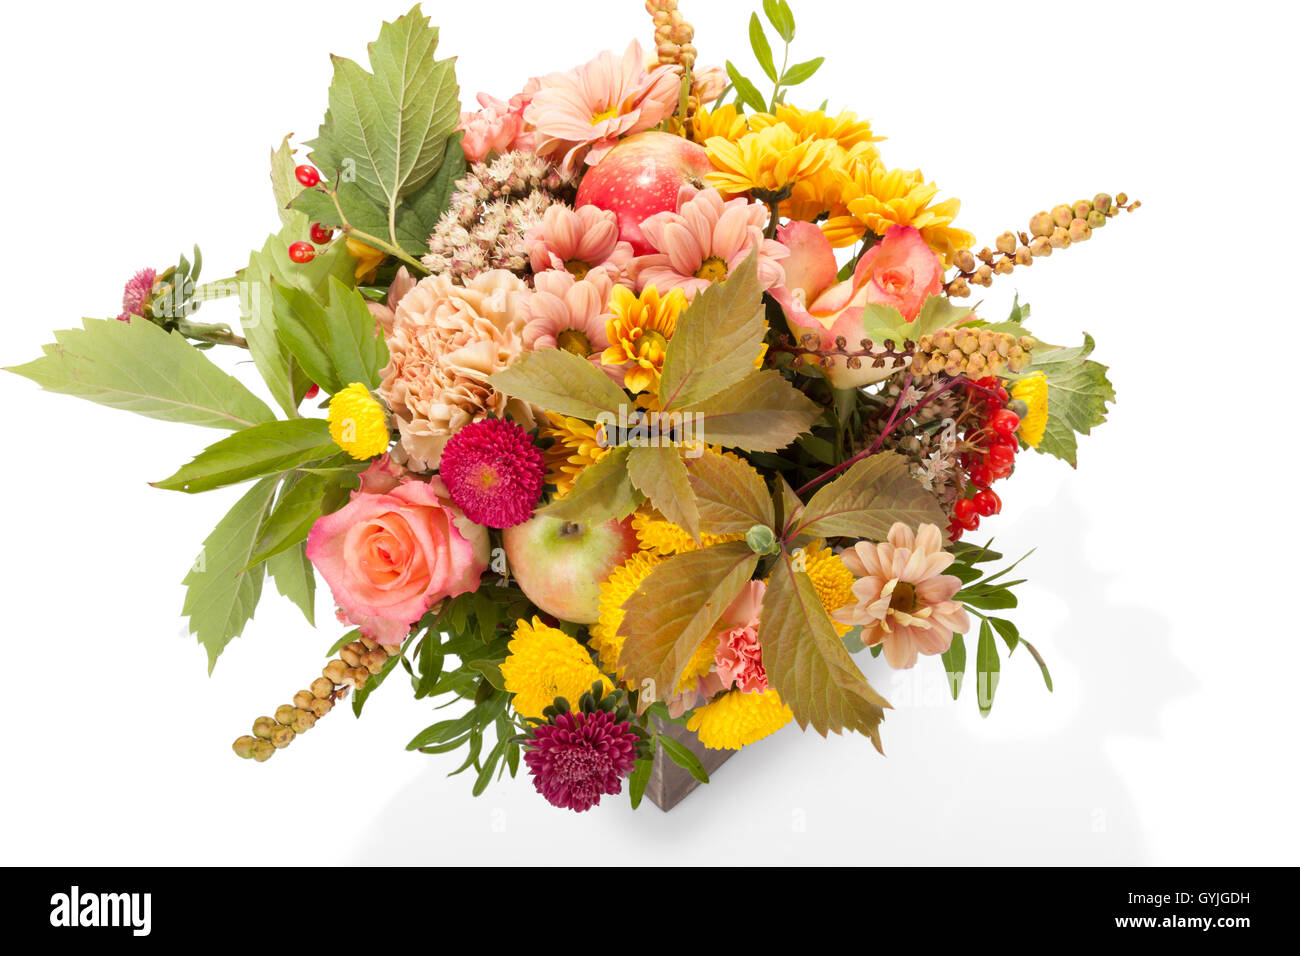 Autumn Flower Bouquet With Berries And Apple In Wooden Box Isolated